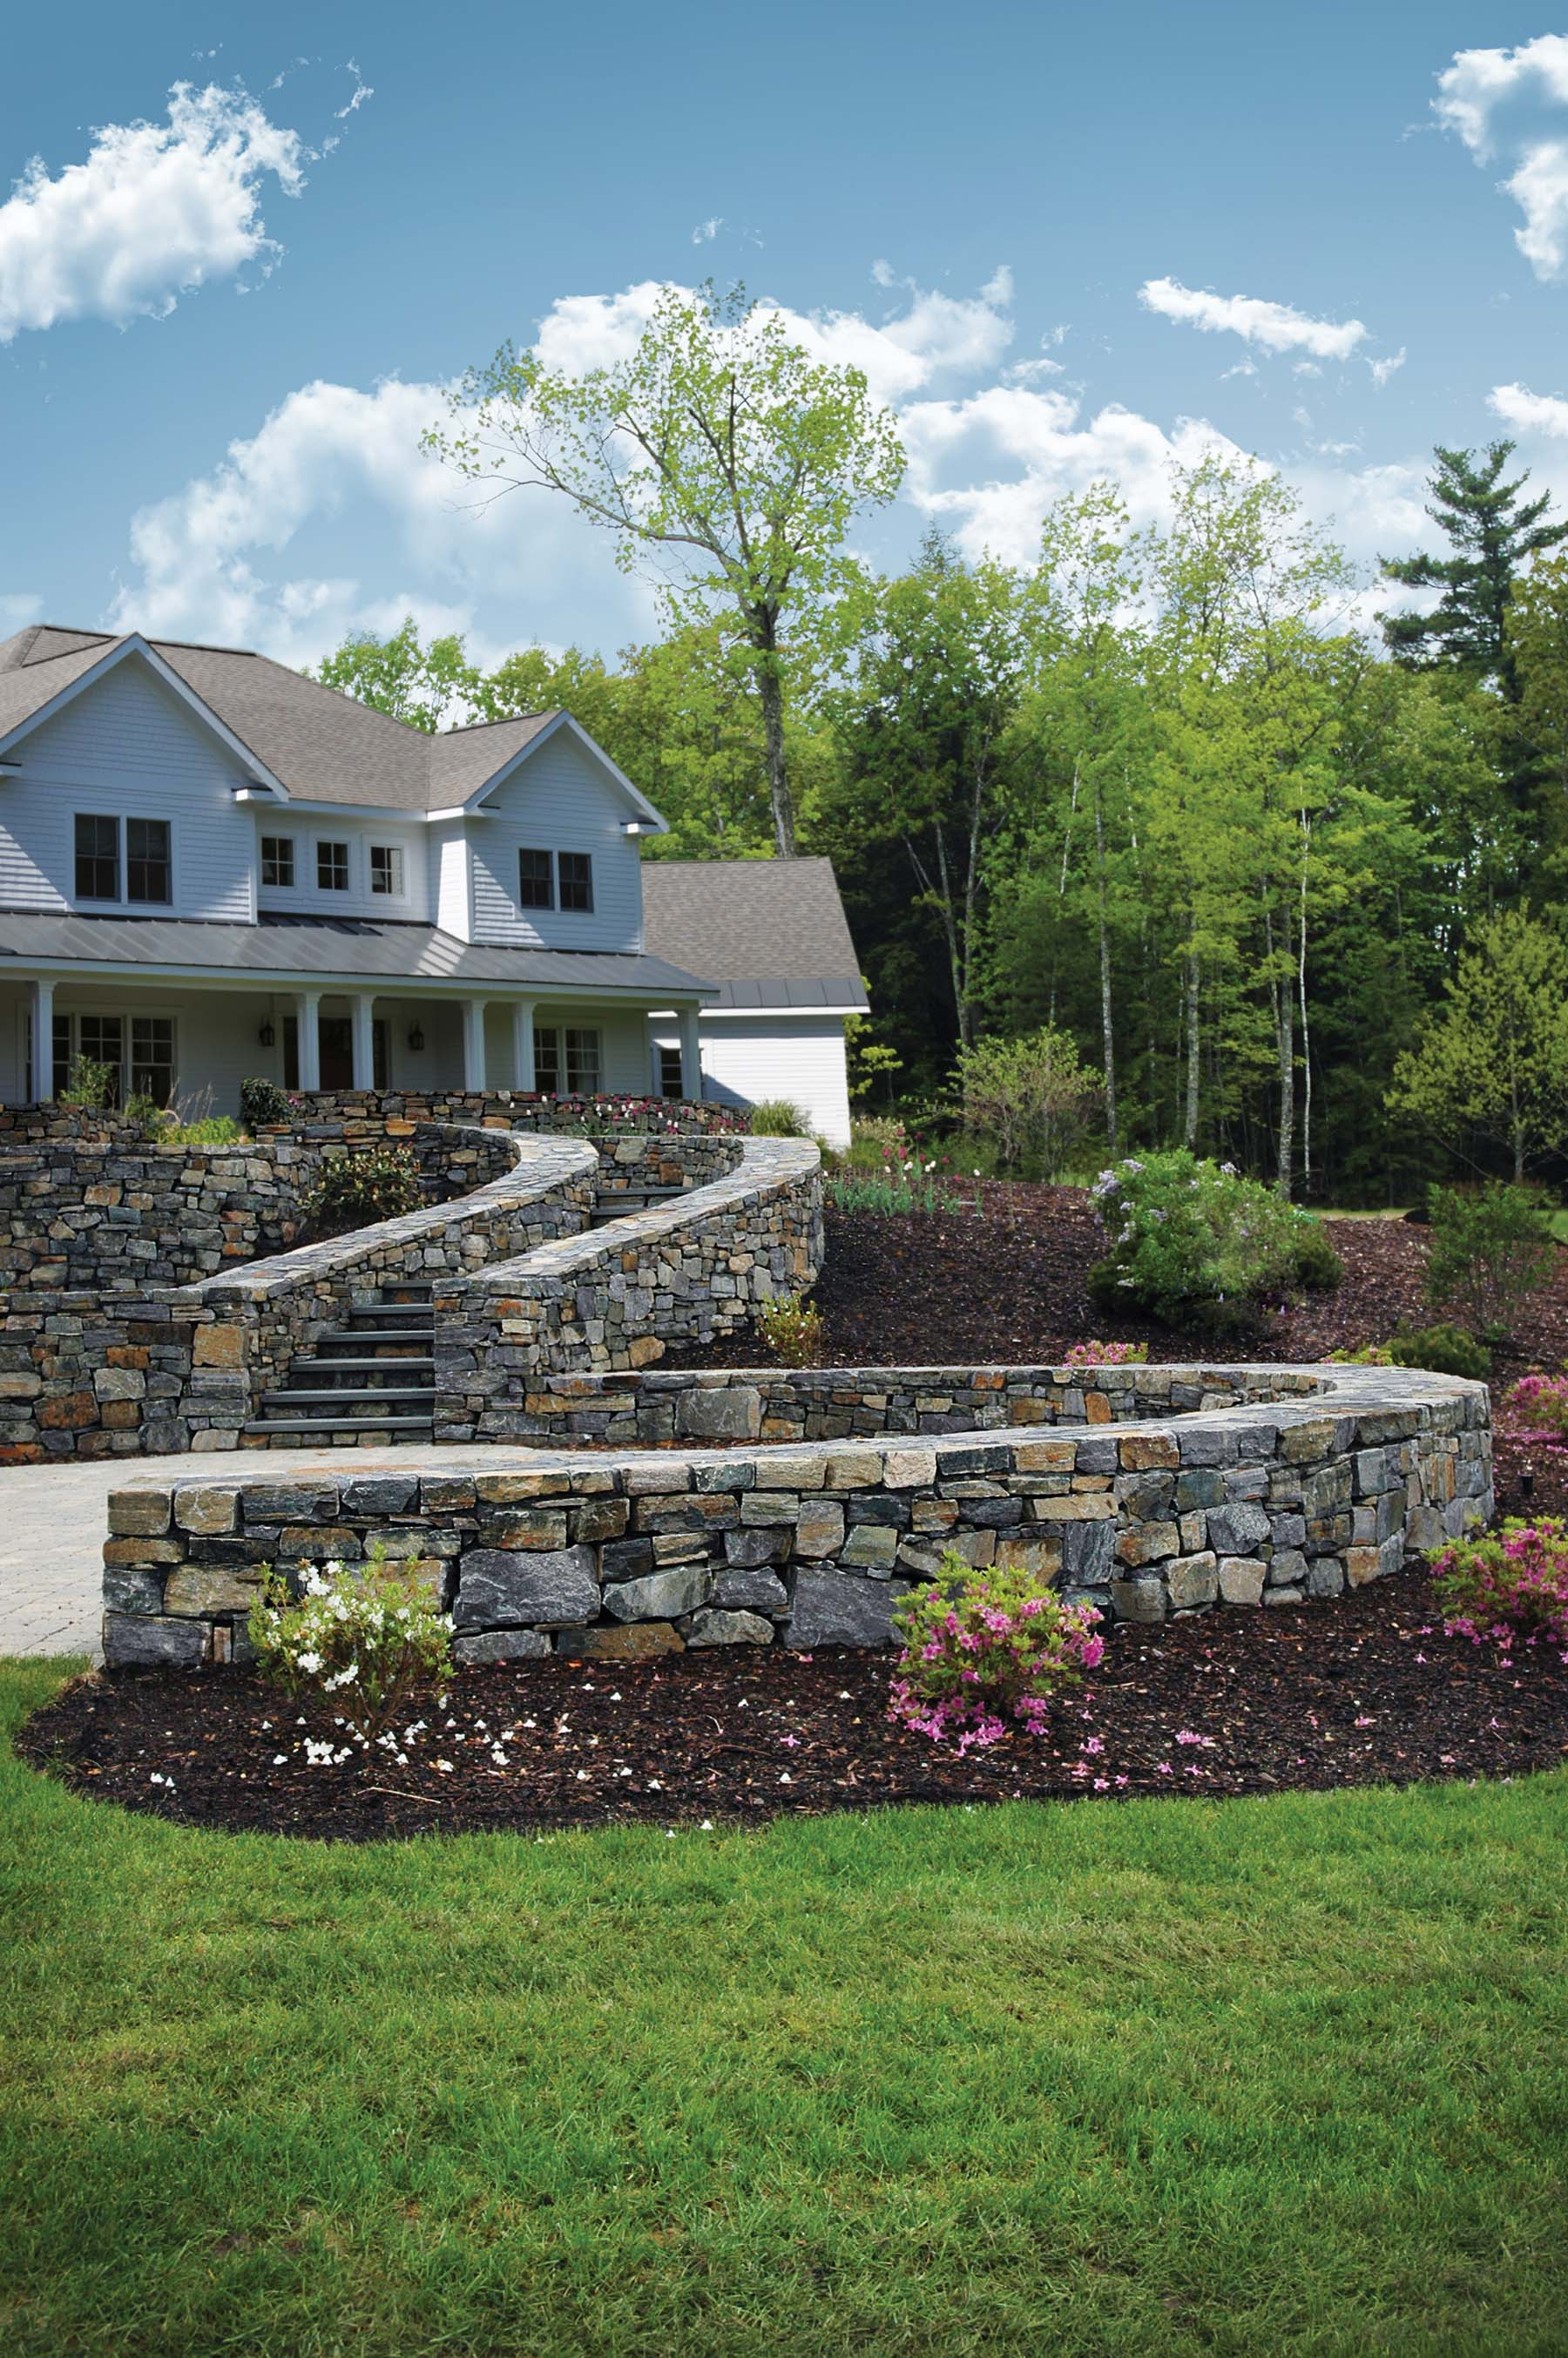 natural Adirondack stone wall surrounding house and stairs